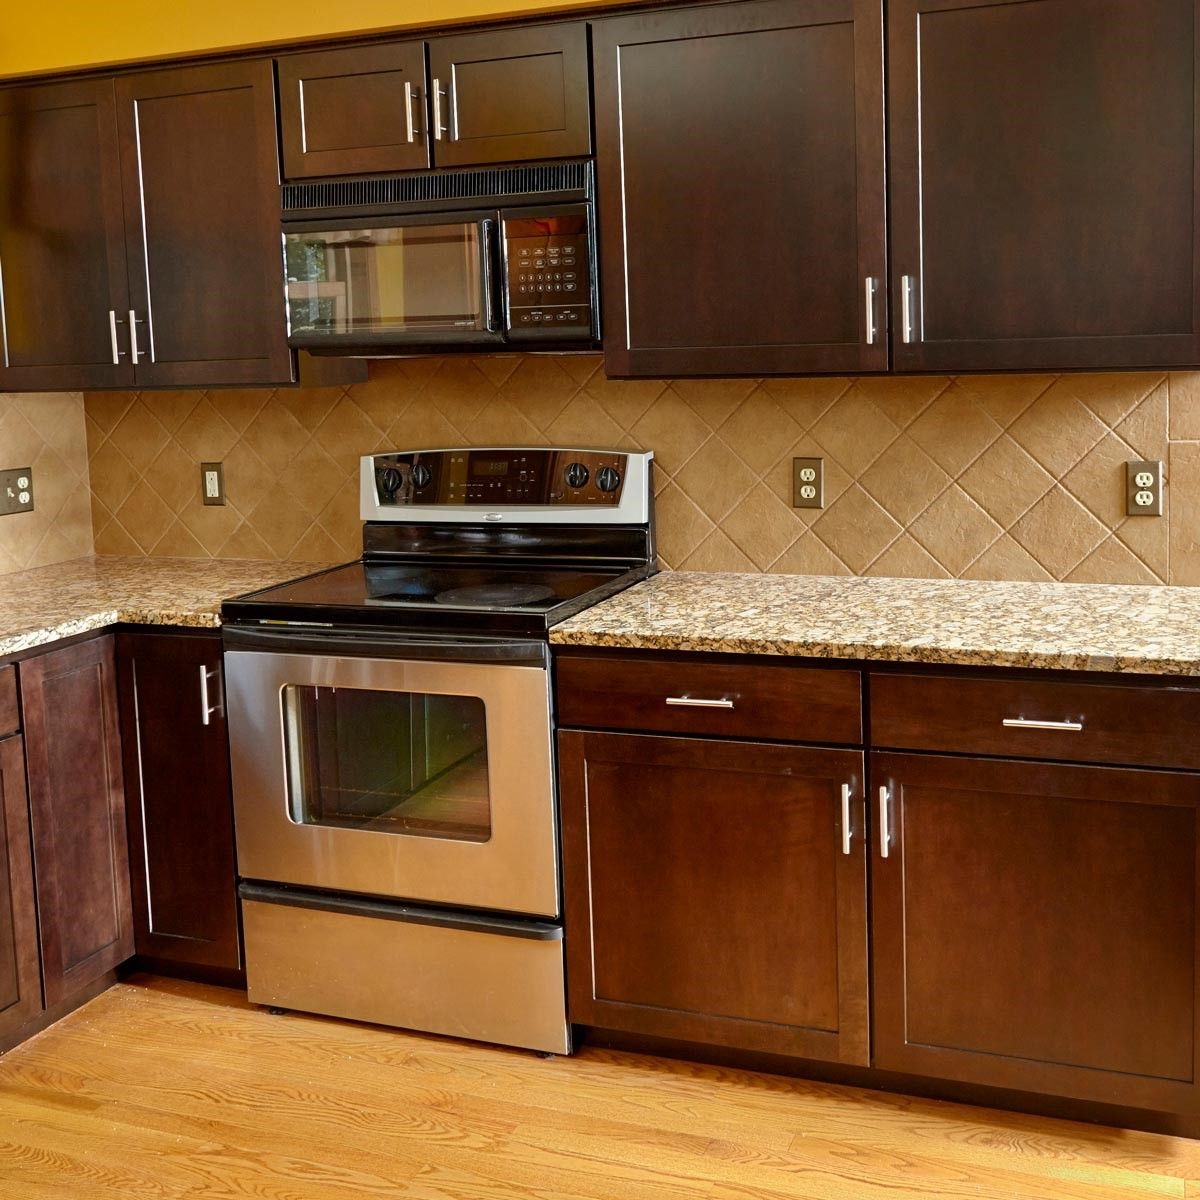 Before And After Pictures Refacing Cabinets: 10 DIY Before And After Cabinet Makeover Projects